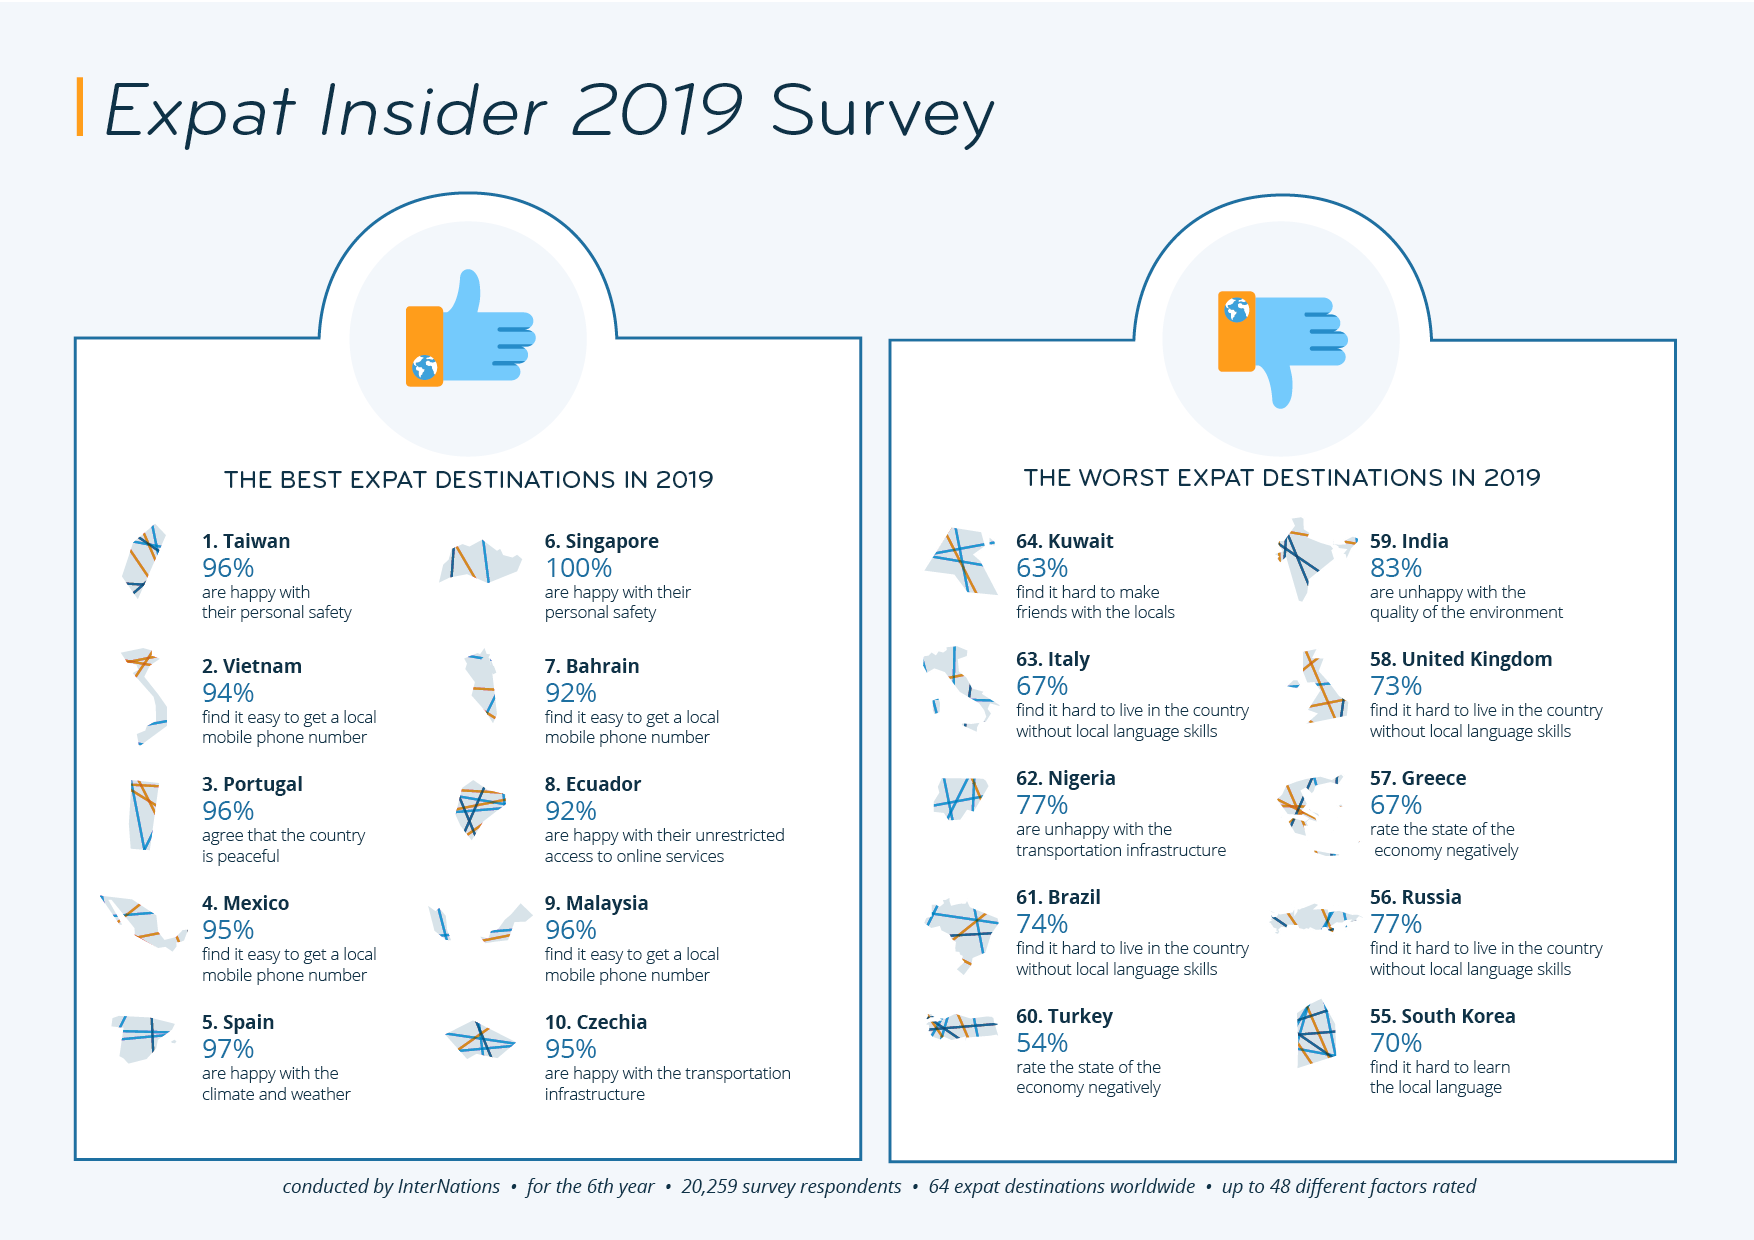 A list of top ten best and worst destinations for expats according to the Expat Insider 2019 survey conducted by InterNations.